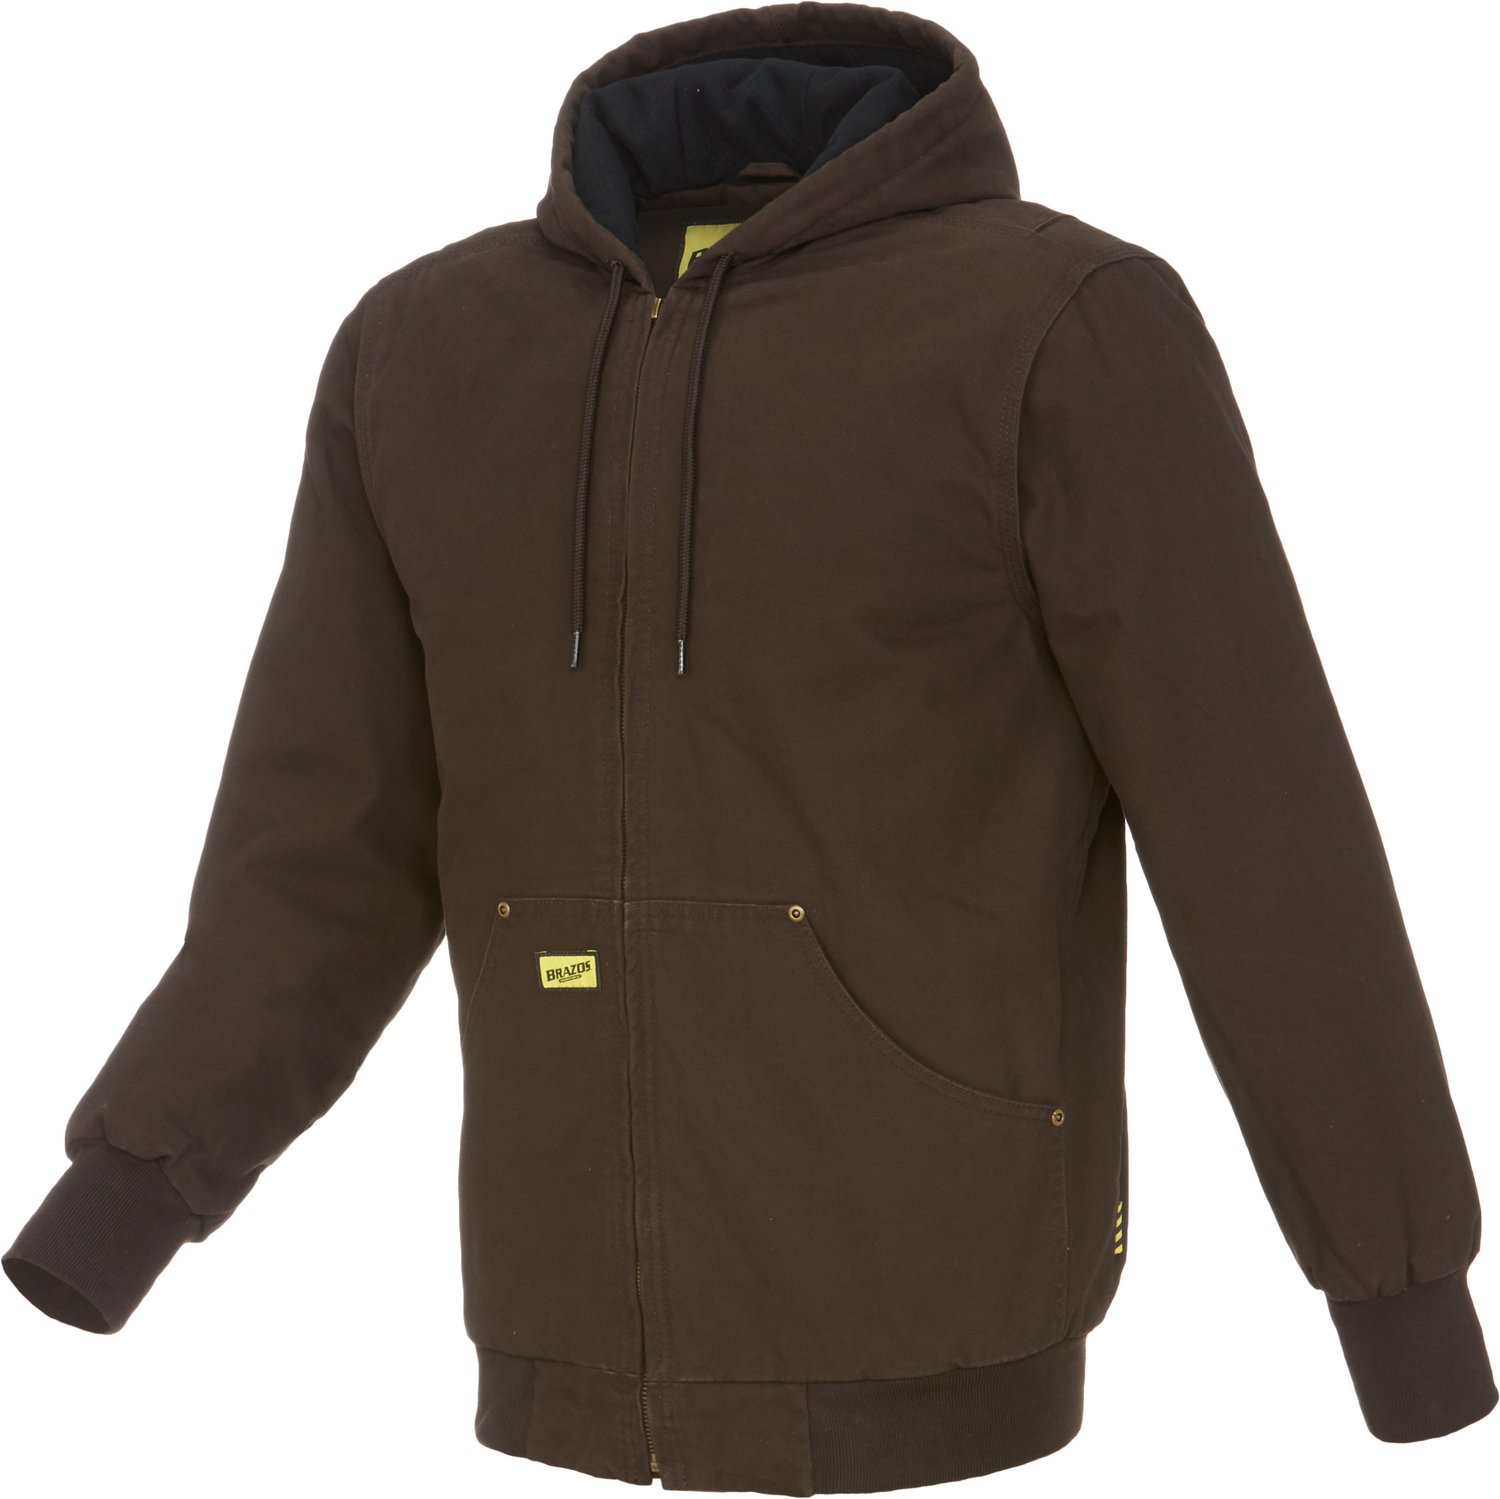 001ea8f7c2e2 Mens Jackets